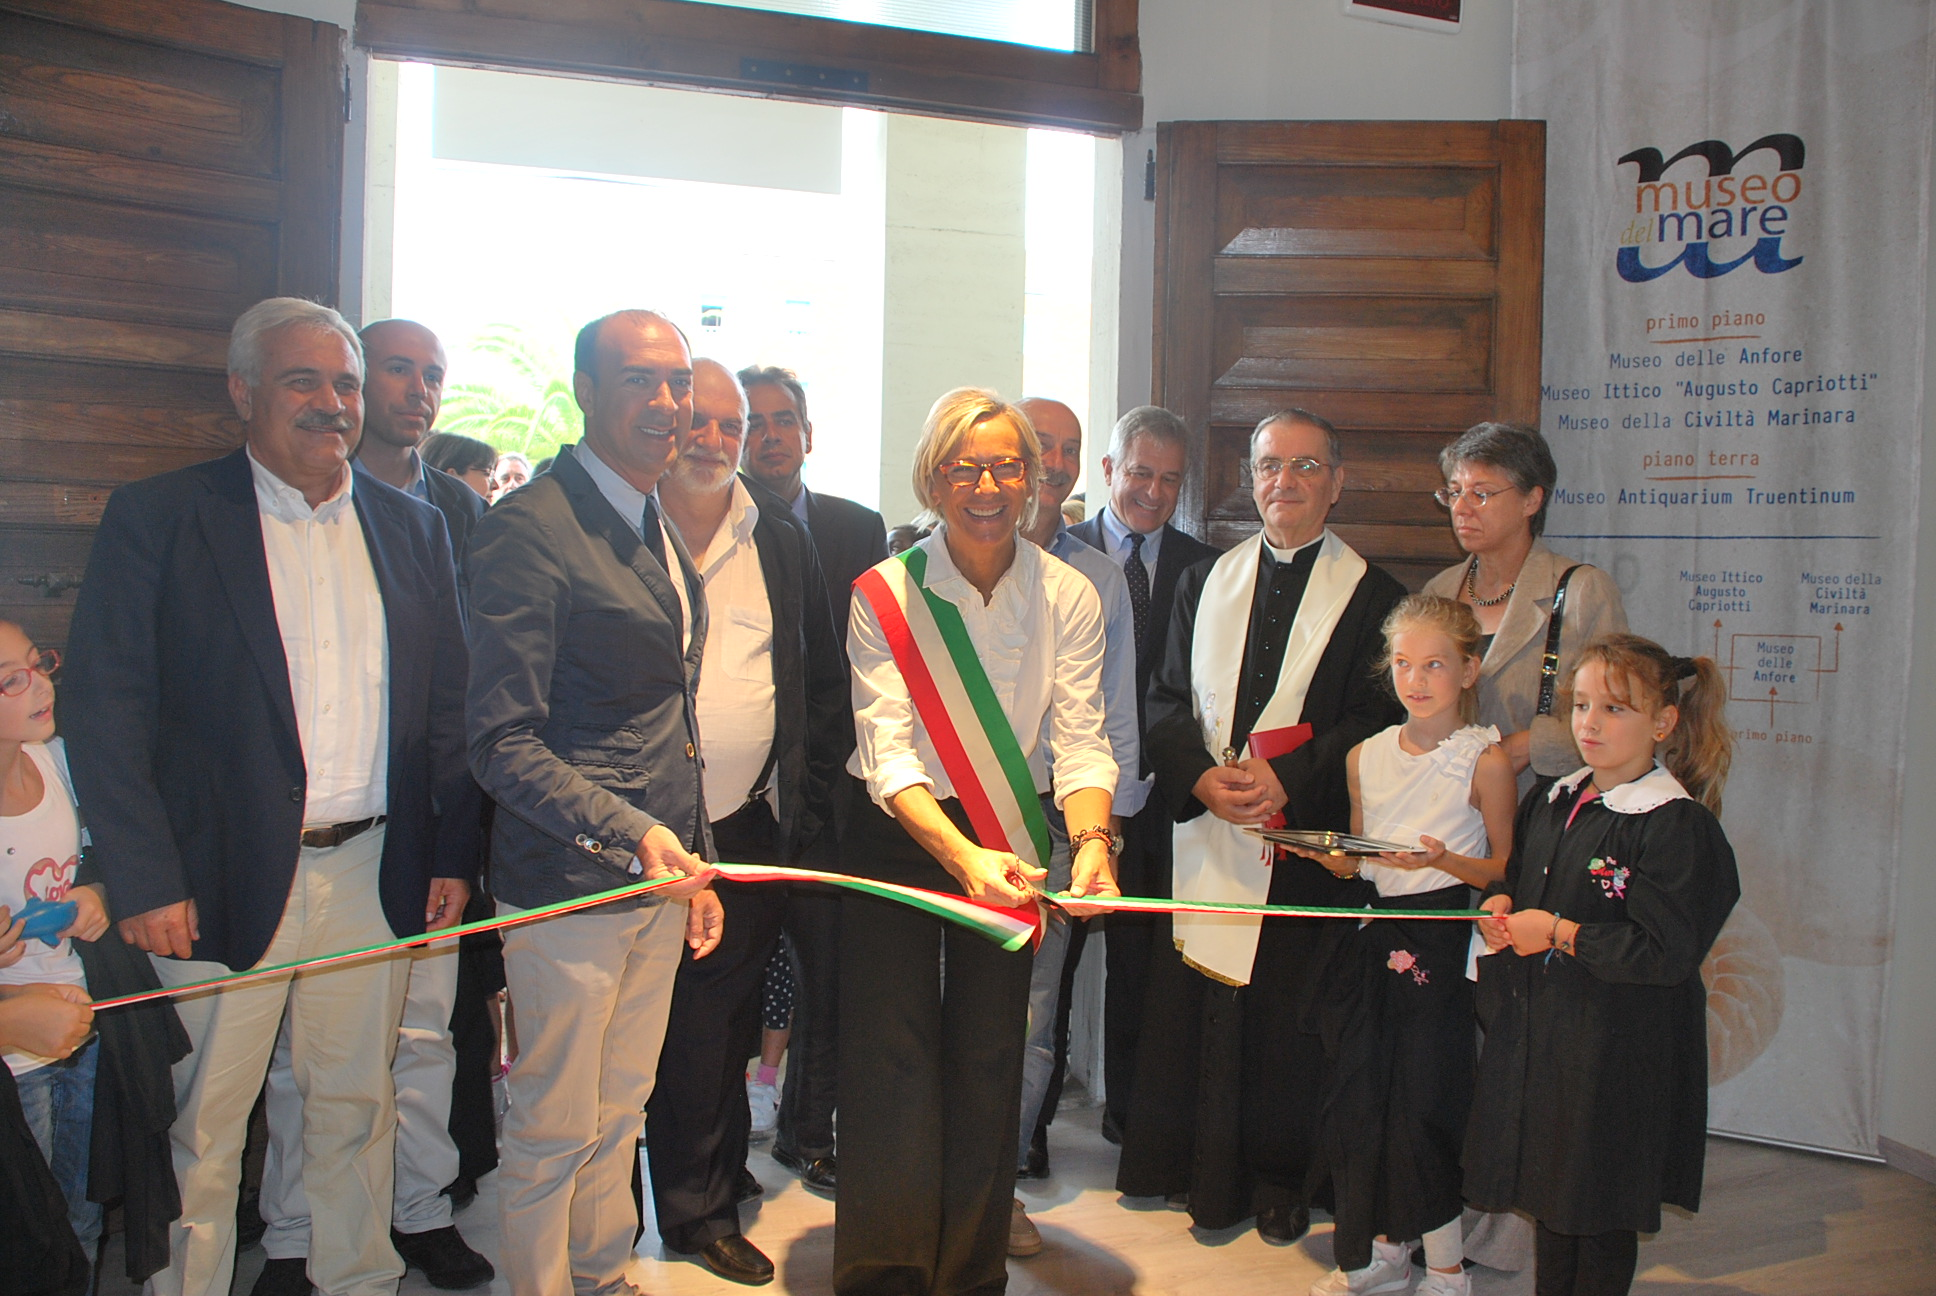 Inaugurazione dell'Antiquarium Truentinum